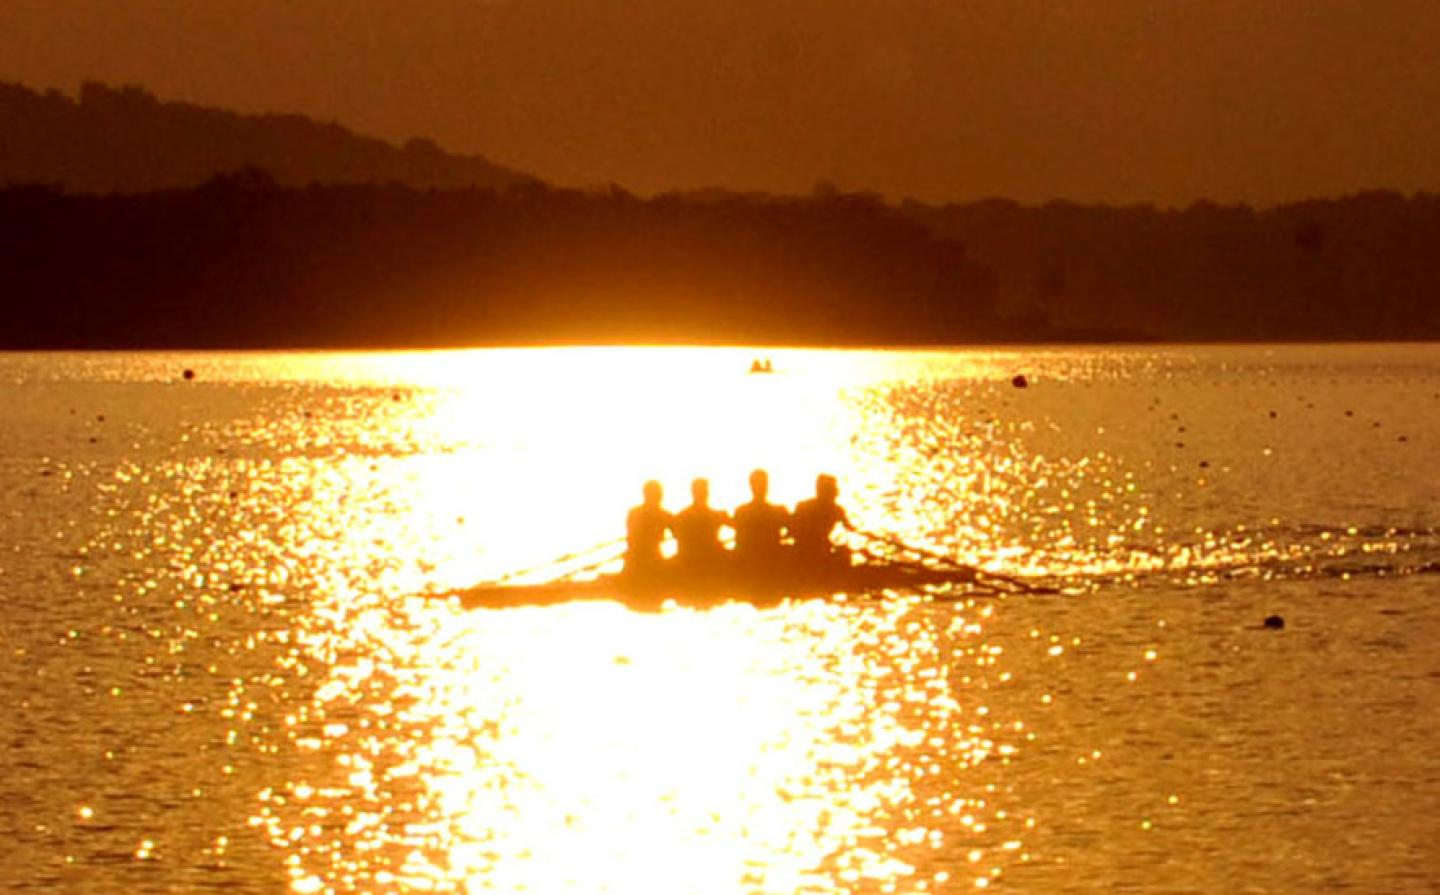 Rowing on Lake Varese: immersed in a landscape of unusual beauty